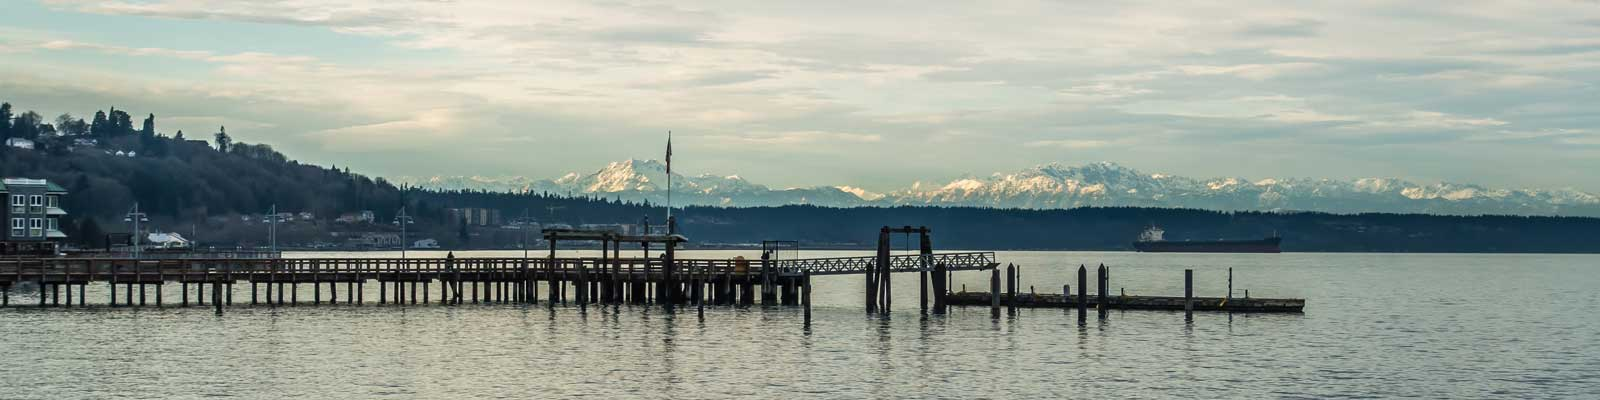 This is an image of a dock on the Commencement Bay in Tacoma. ASTA-USA provides professional translation services in this city.